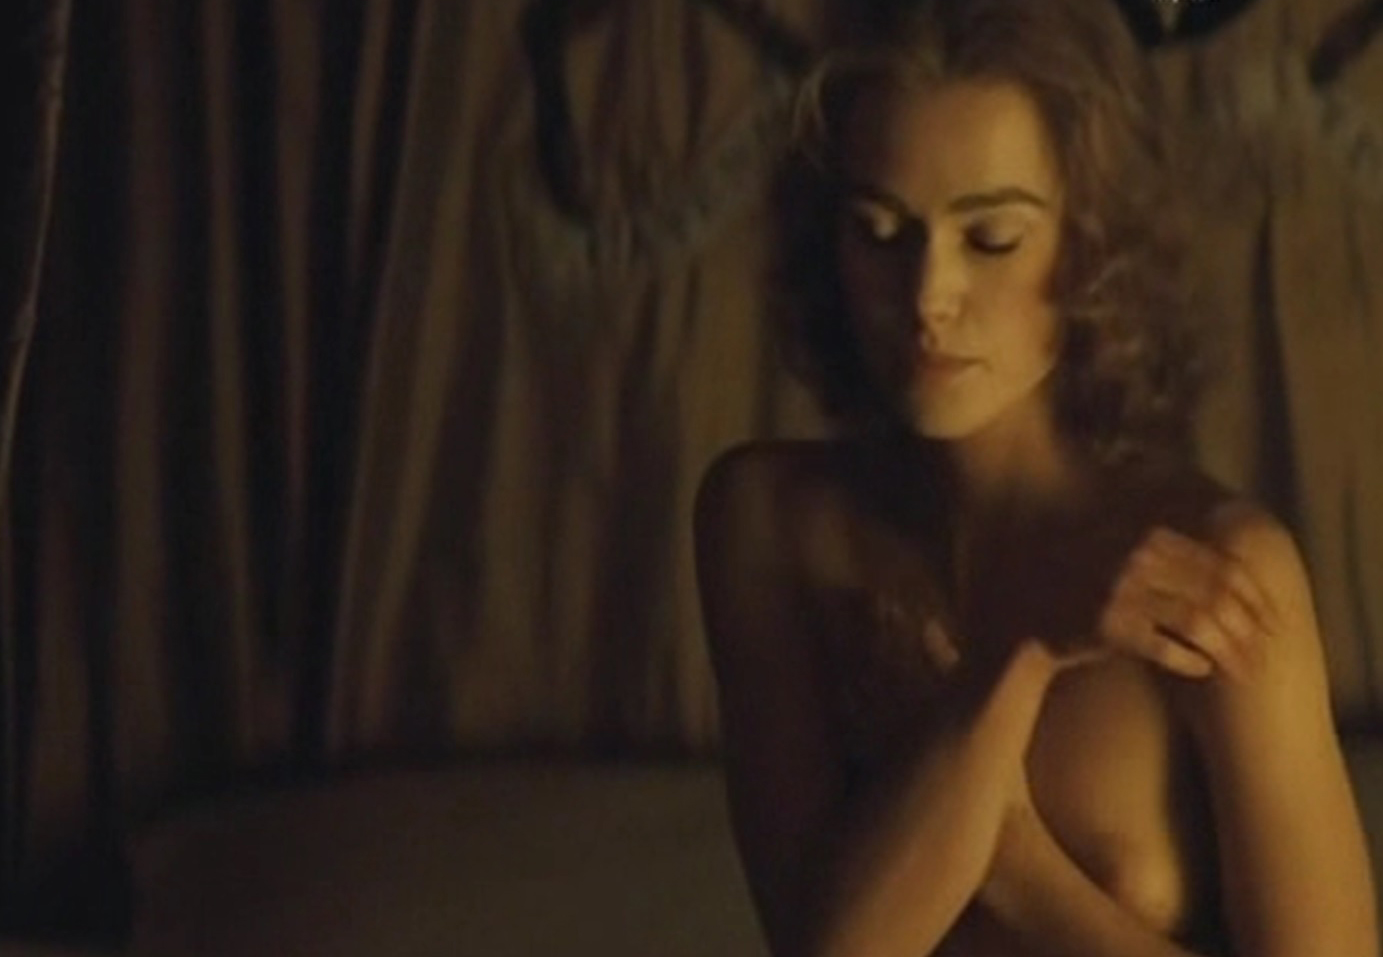 Keira knightley real sex tape